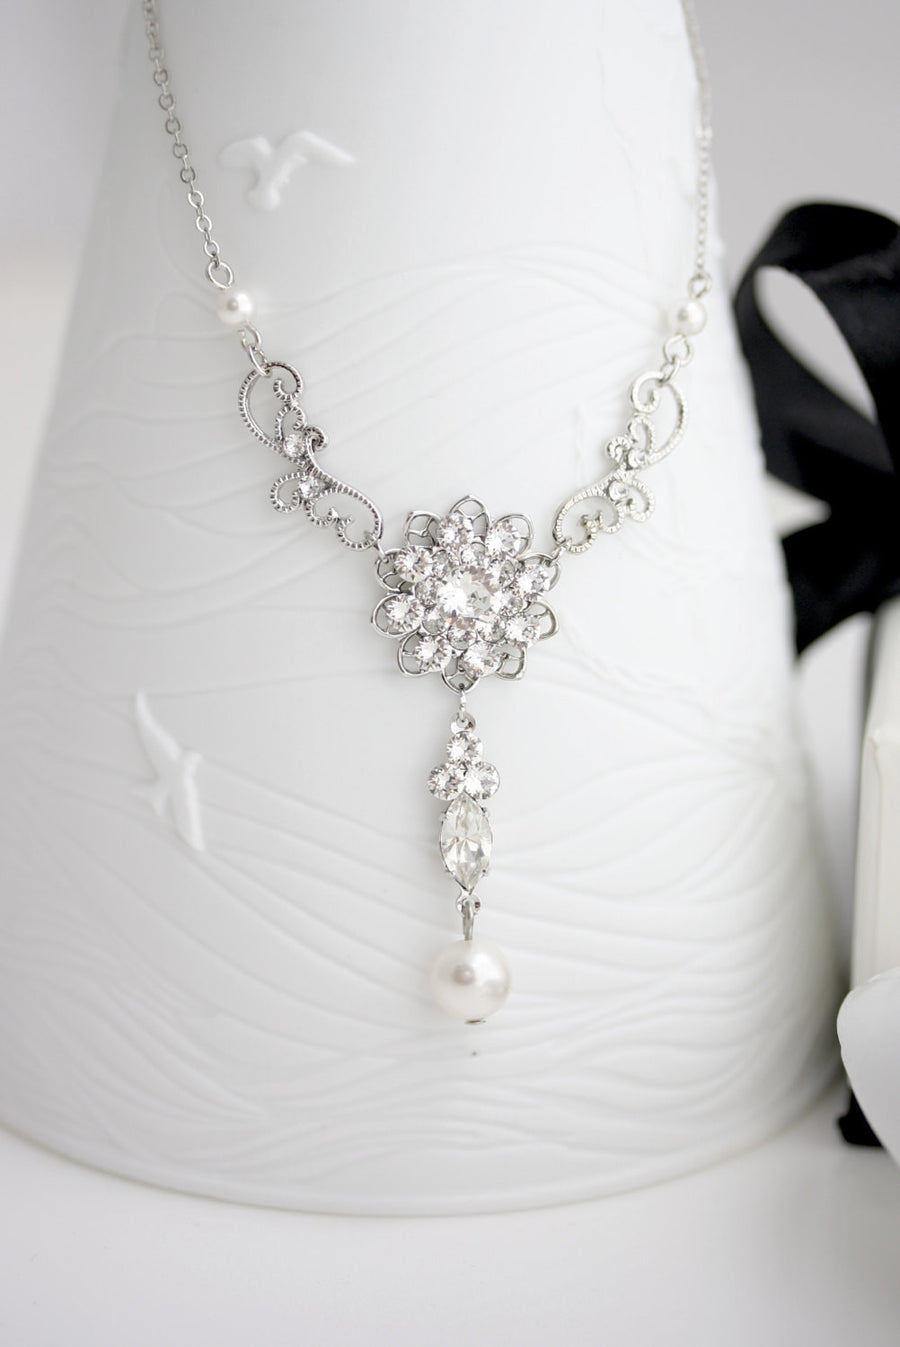 CARA CRYSTAL WEDDING NECKLACE - Lulu Splendor